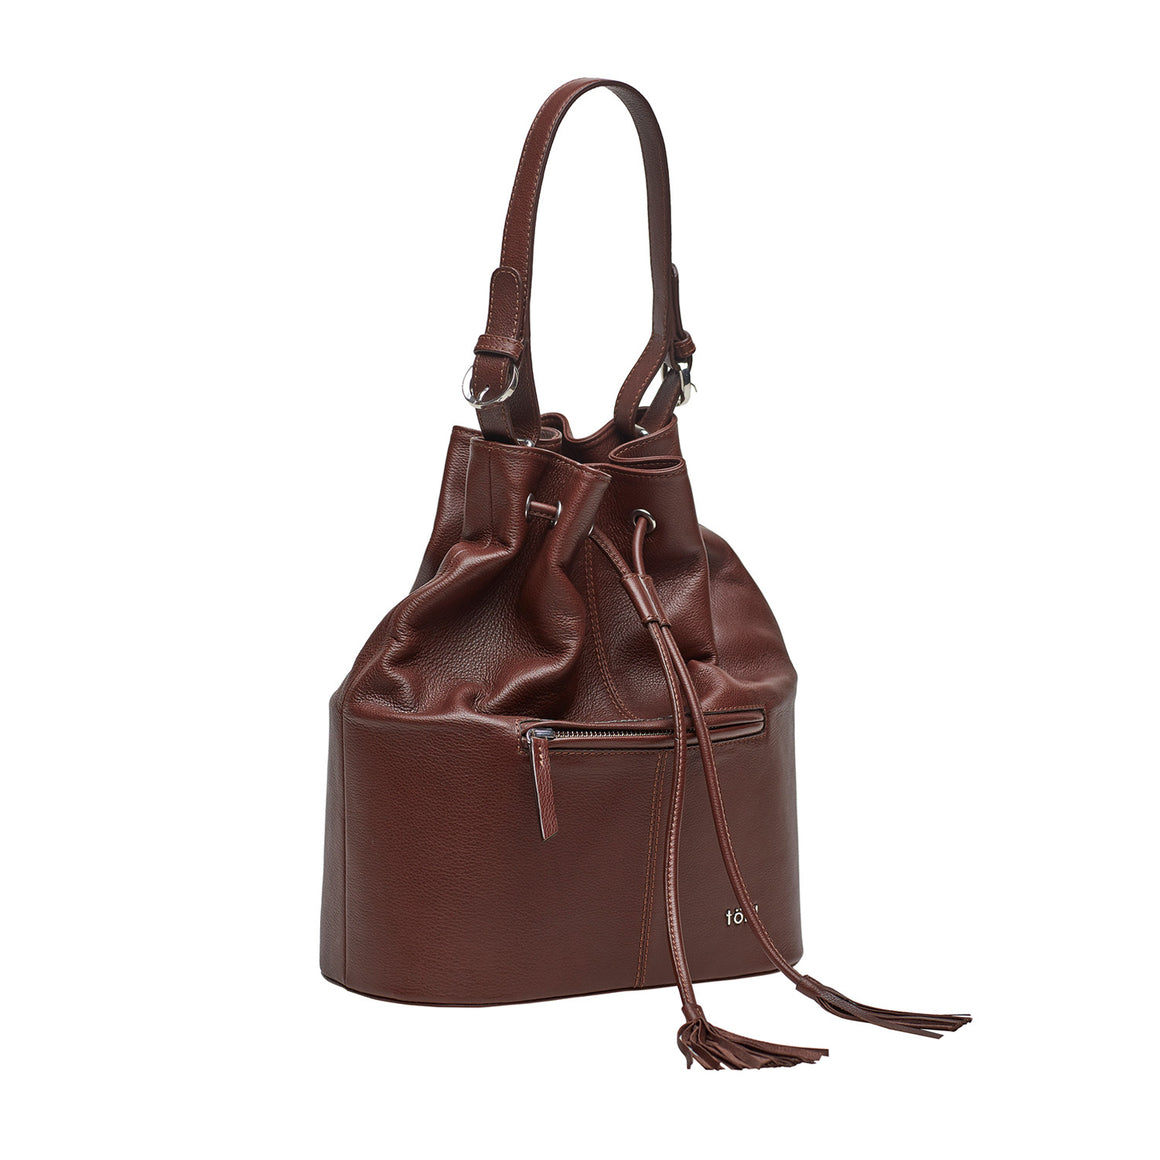 SB 0015 - TOHL NUSA WOMEN'S SHOULDER BAG - CHOCO